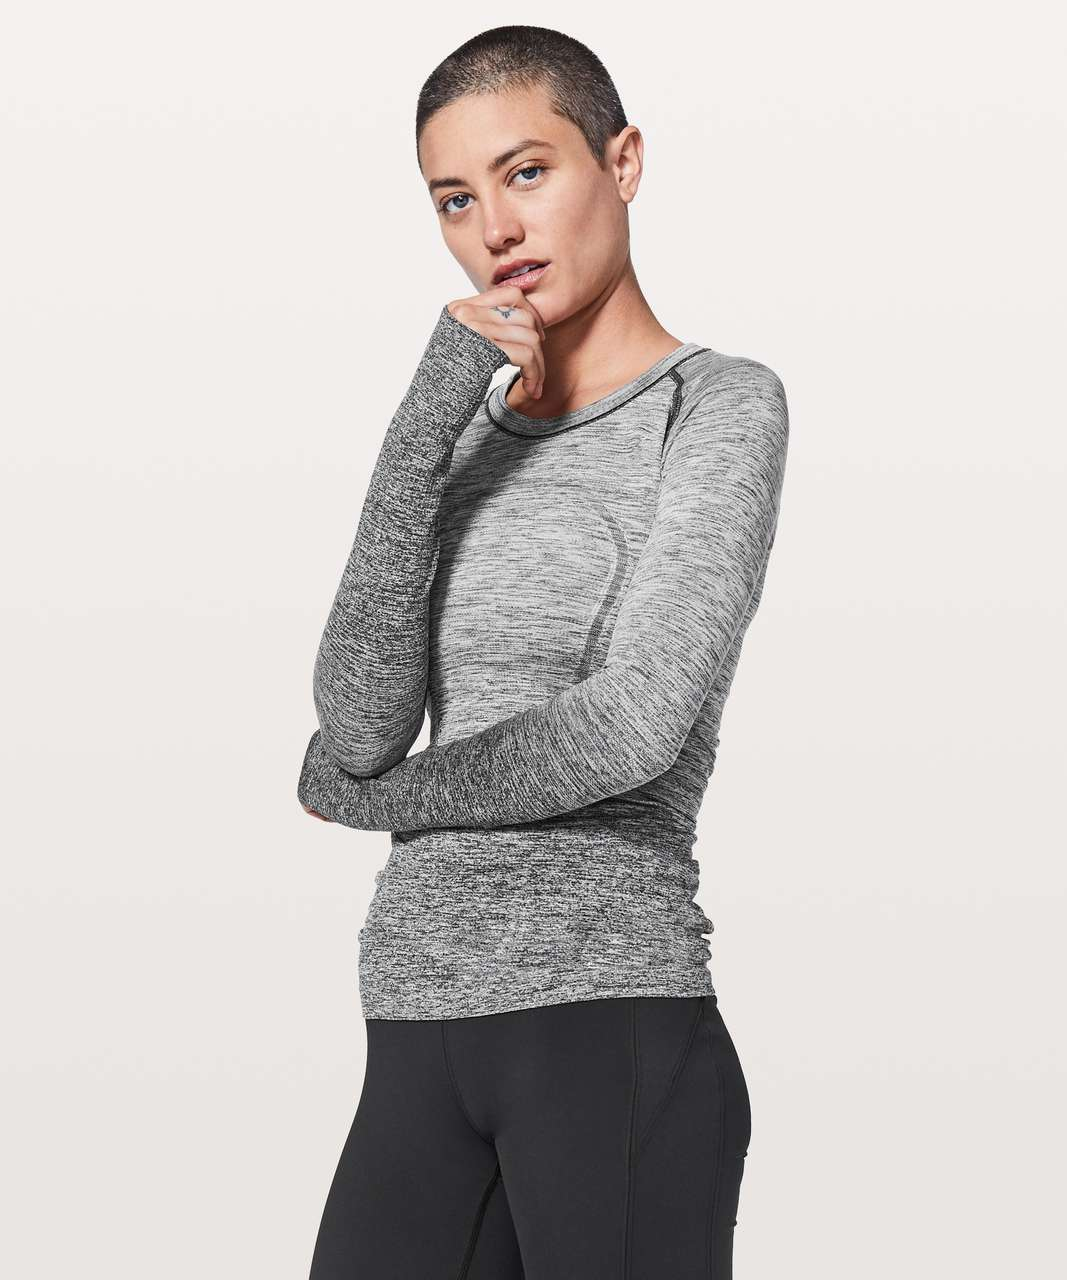 Lululemon Swiftly Tech Long Sleeve Crew - Black / White (Grey Ombre)